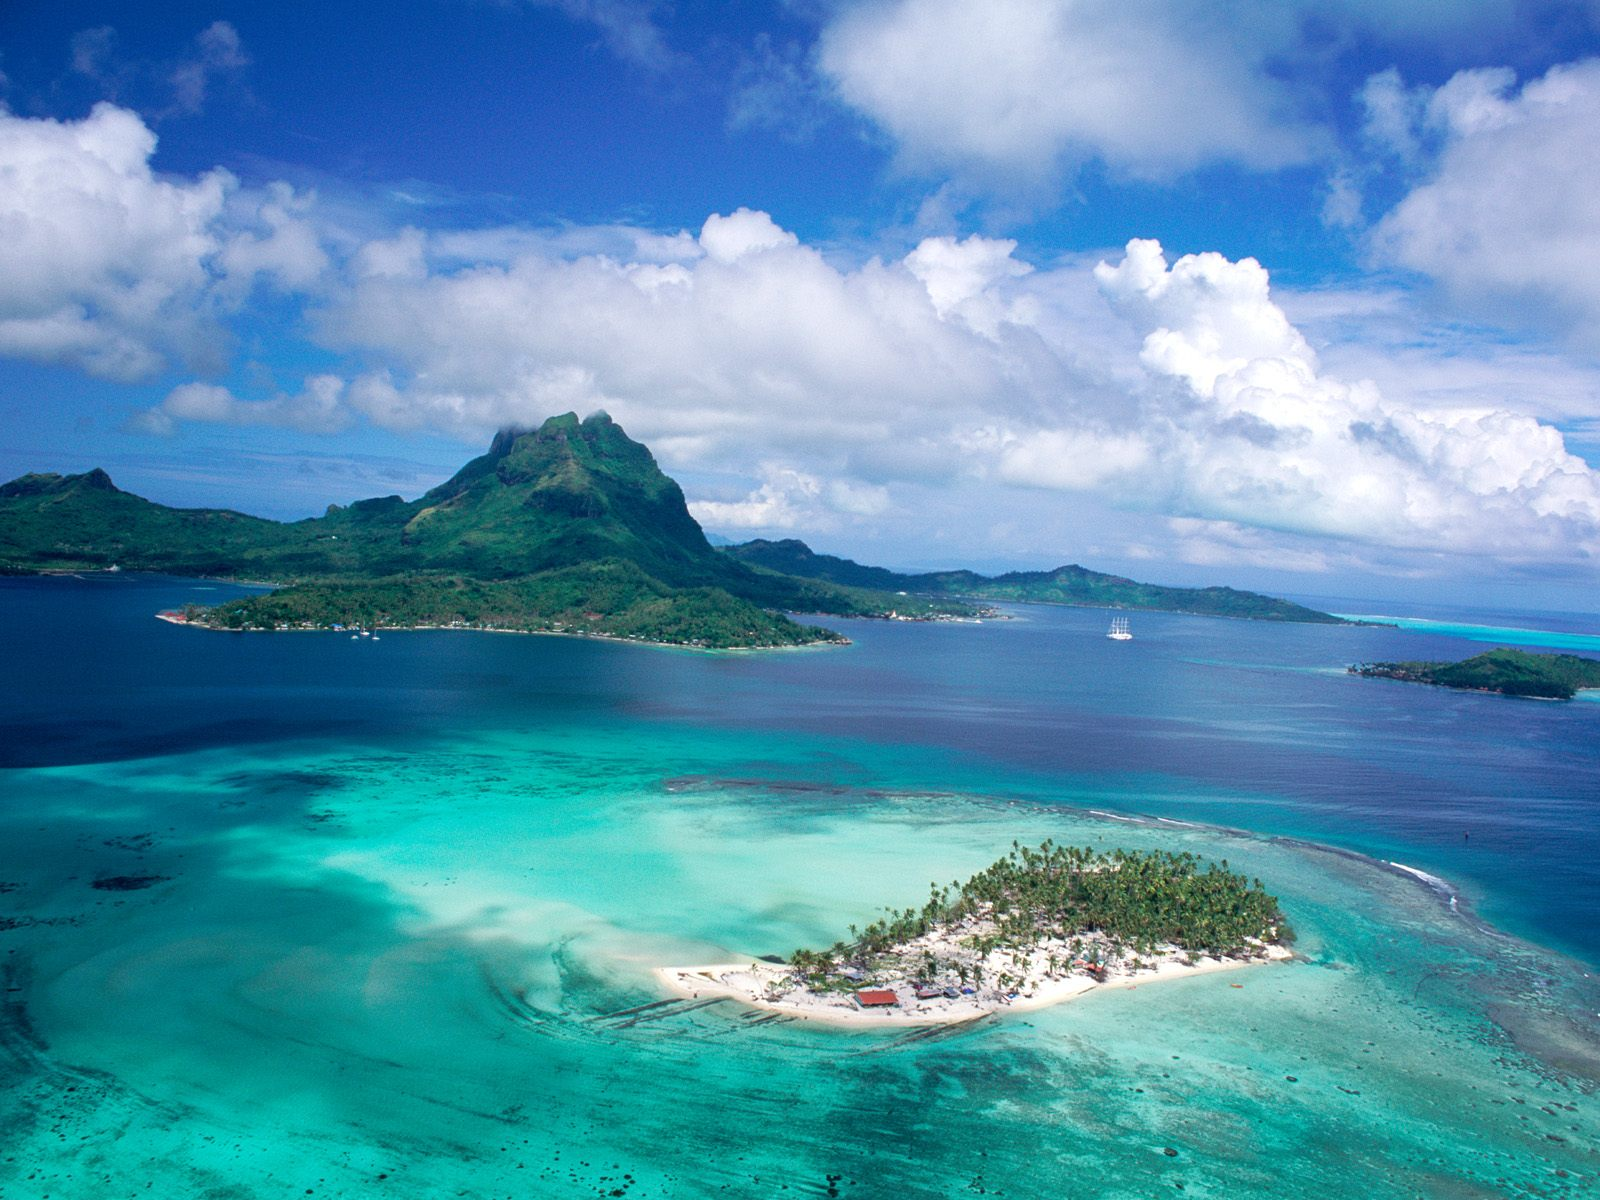 HD Tropic Island Beach Wallpapers Download Wallpapers in HD 1600x1200